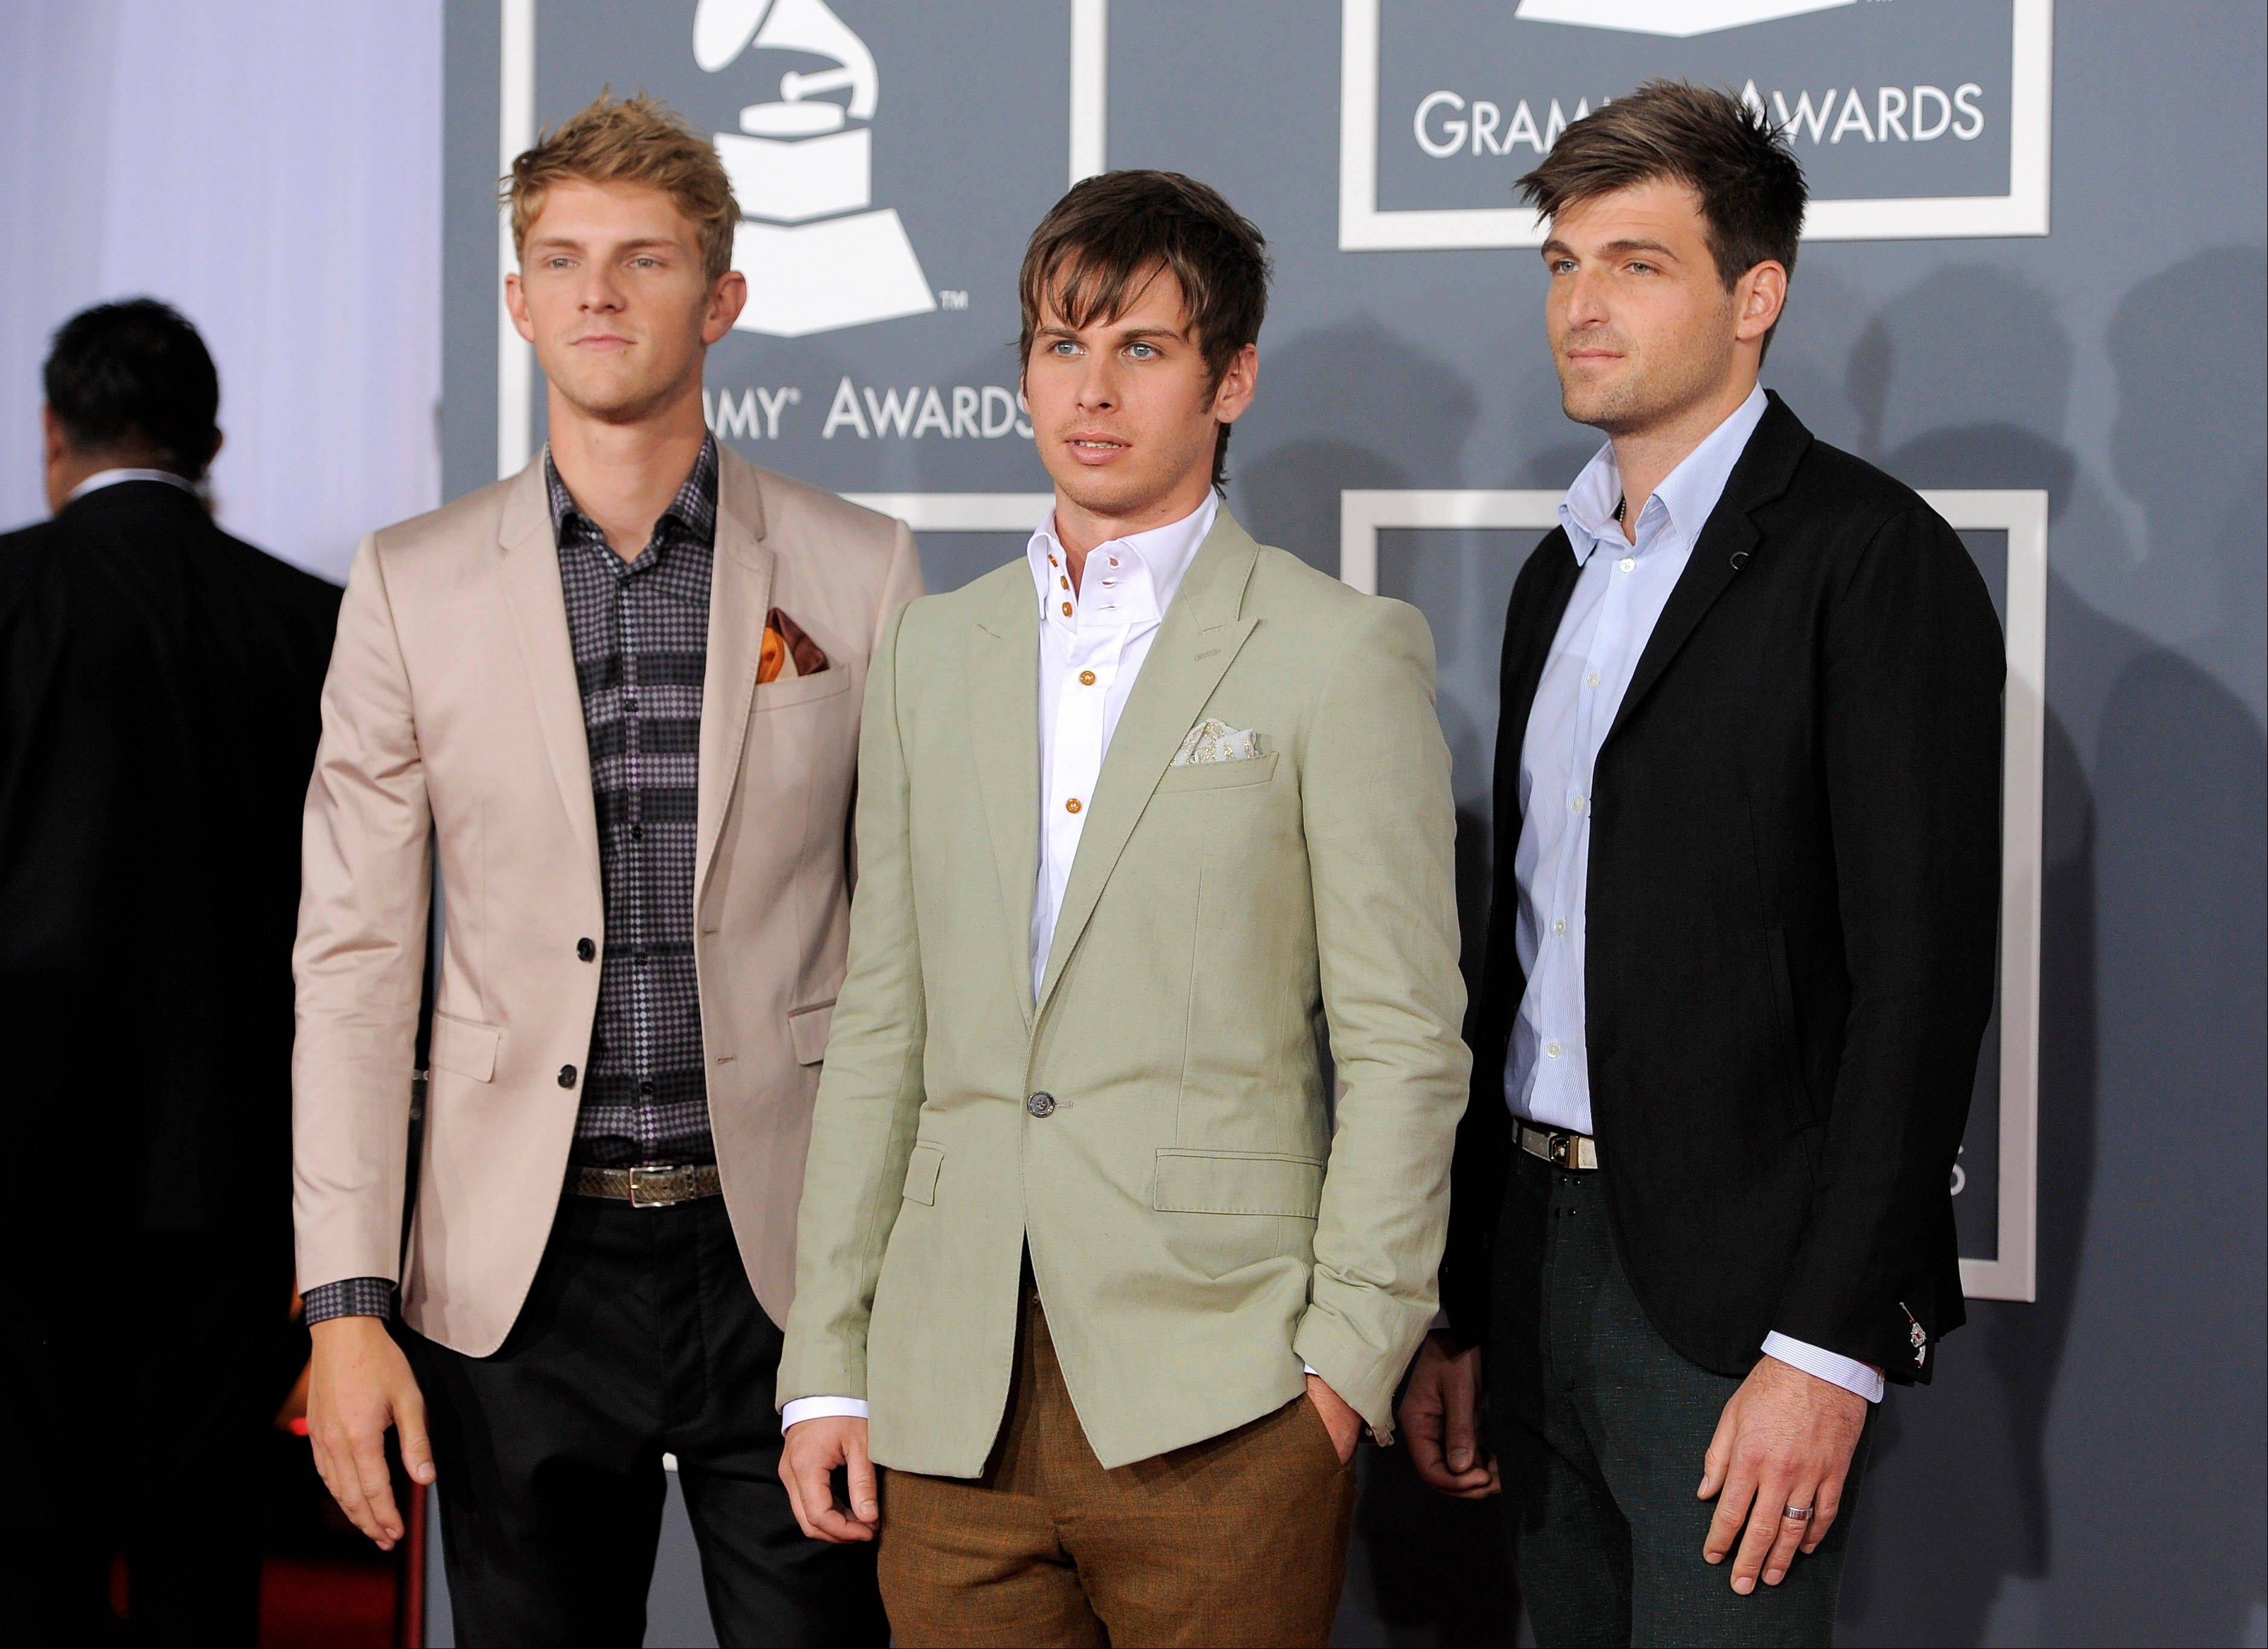 The band Foster the People arrives Sunday at the 54th annual Grammy Awards in Los Angeles.